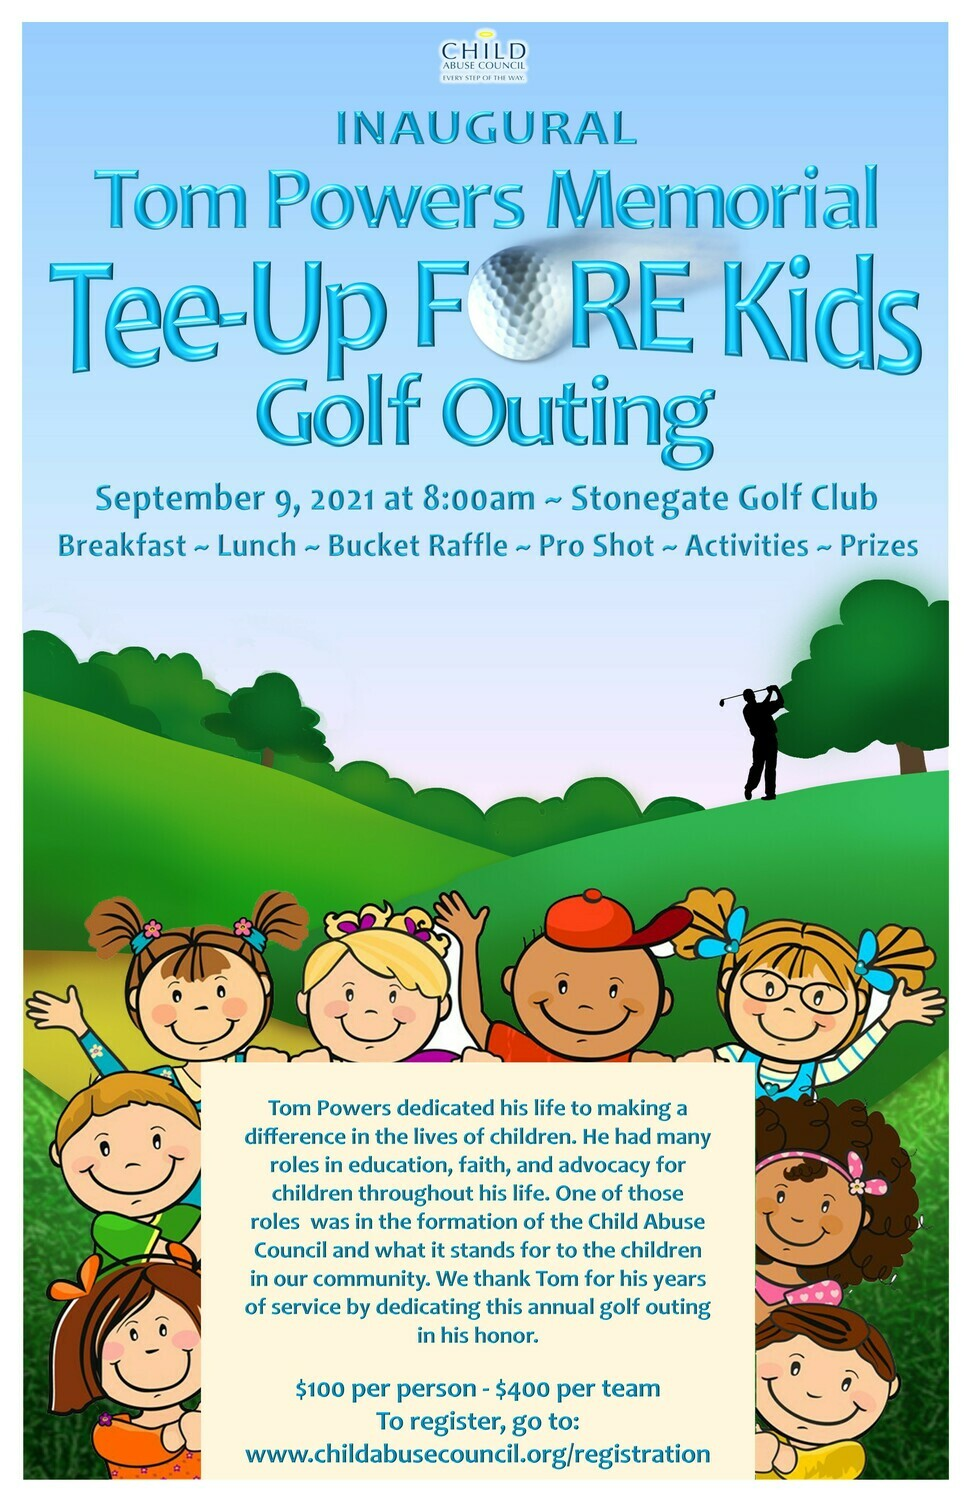 Tom Powers Memorial Tee-Up FORE Kids Golf Outing Registration